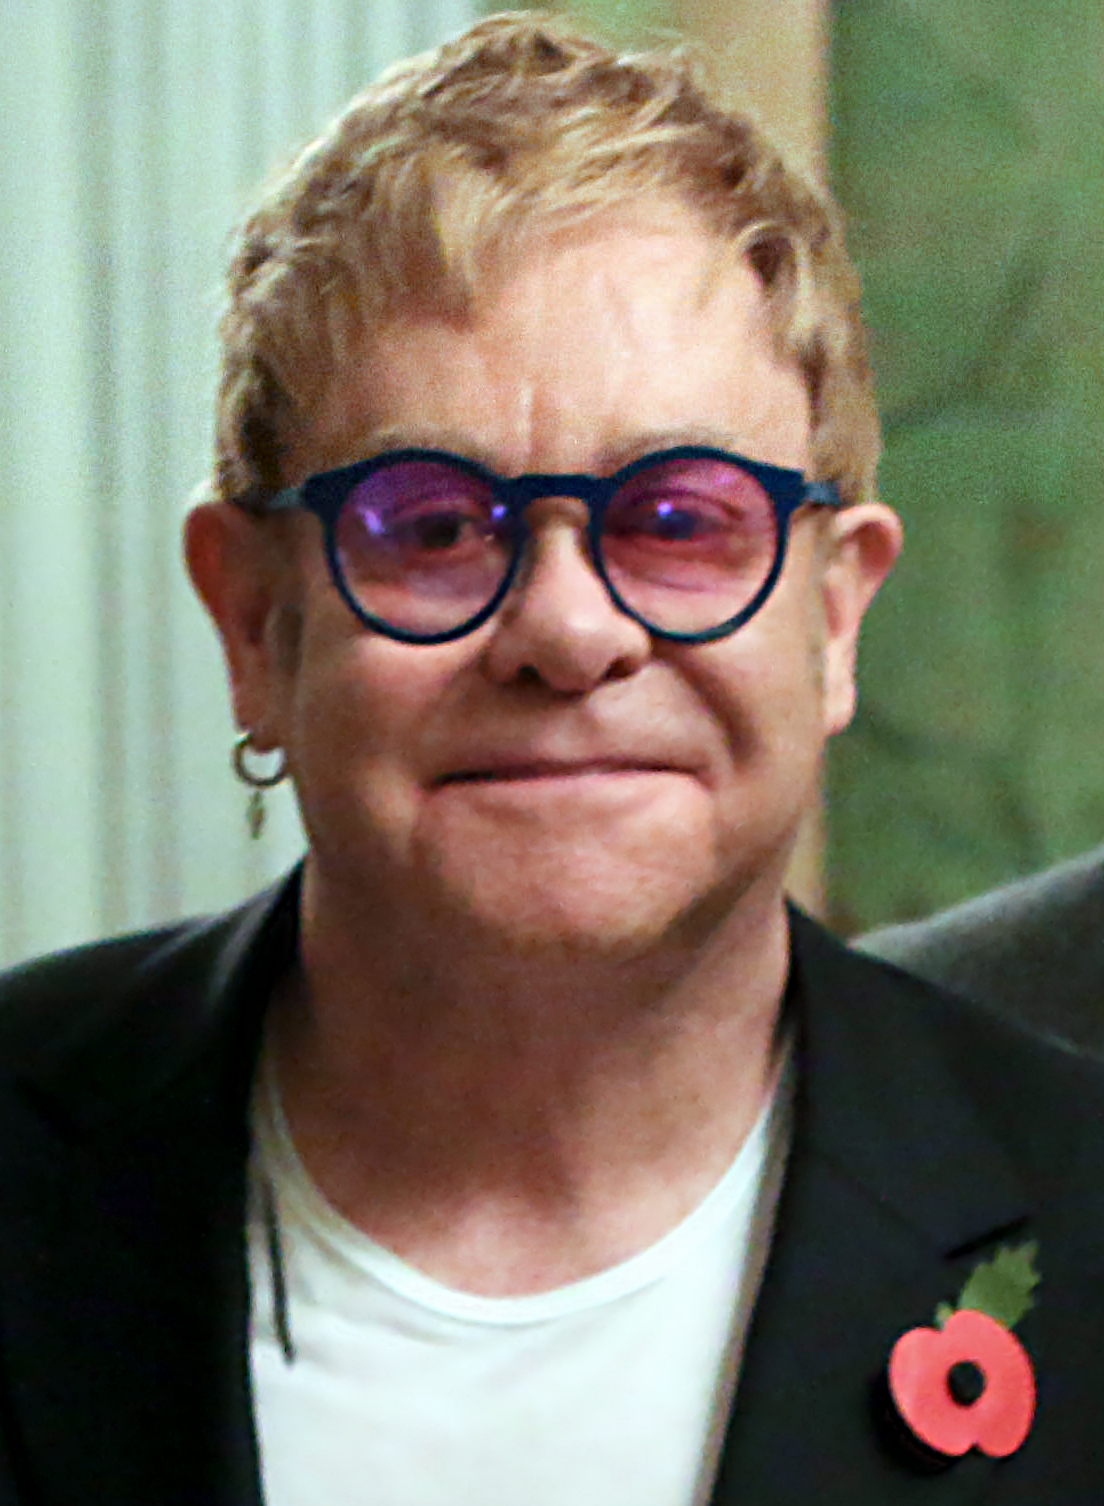 Elton John | All the action from the casino floor: news, views and more